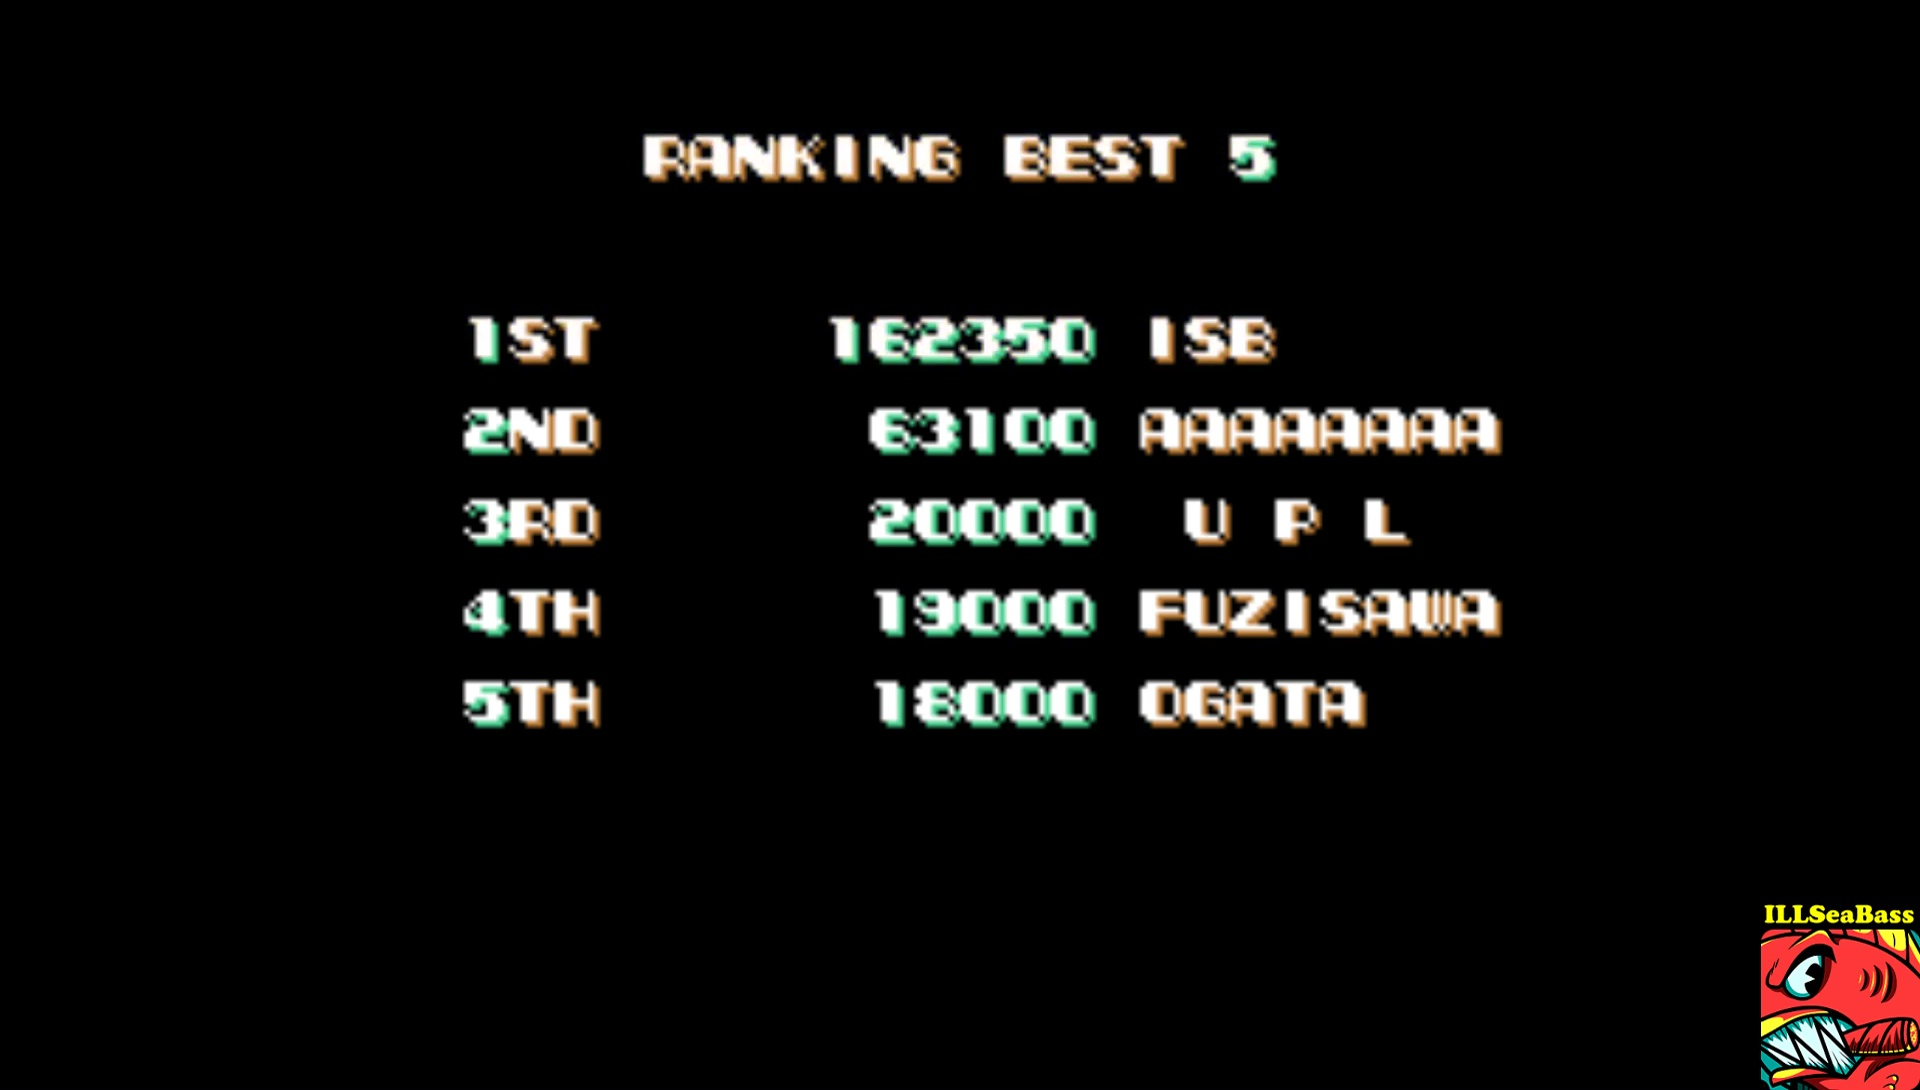 ILLSeaBass: Penguin-Kun Wars [pkunwar] (Arcade Emulated / M.A.M.E.) 162,350 points on 2017-08-28 23:18:29